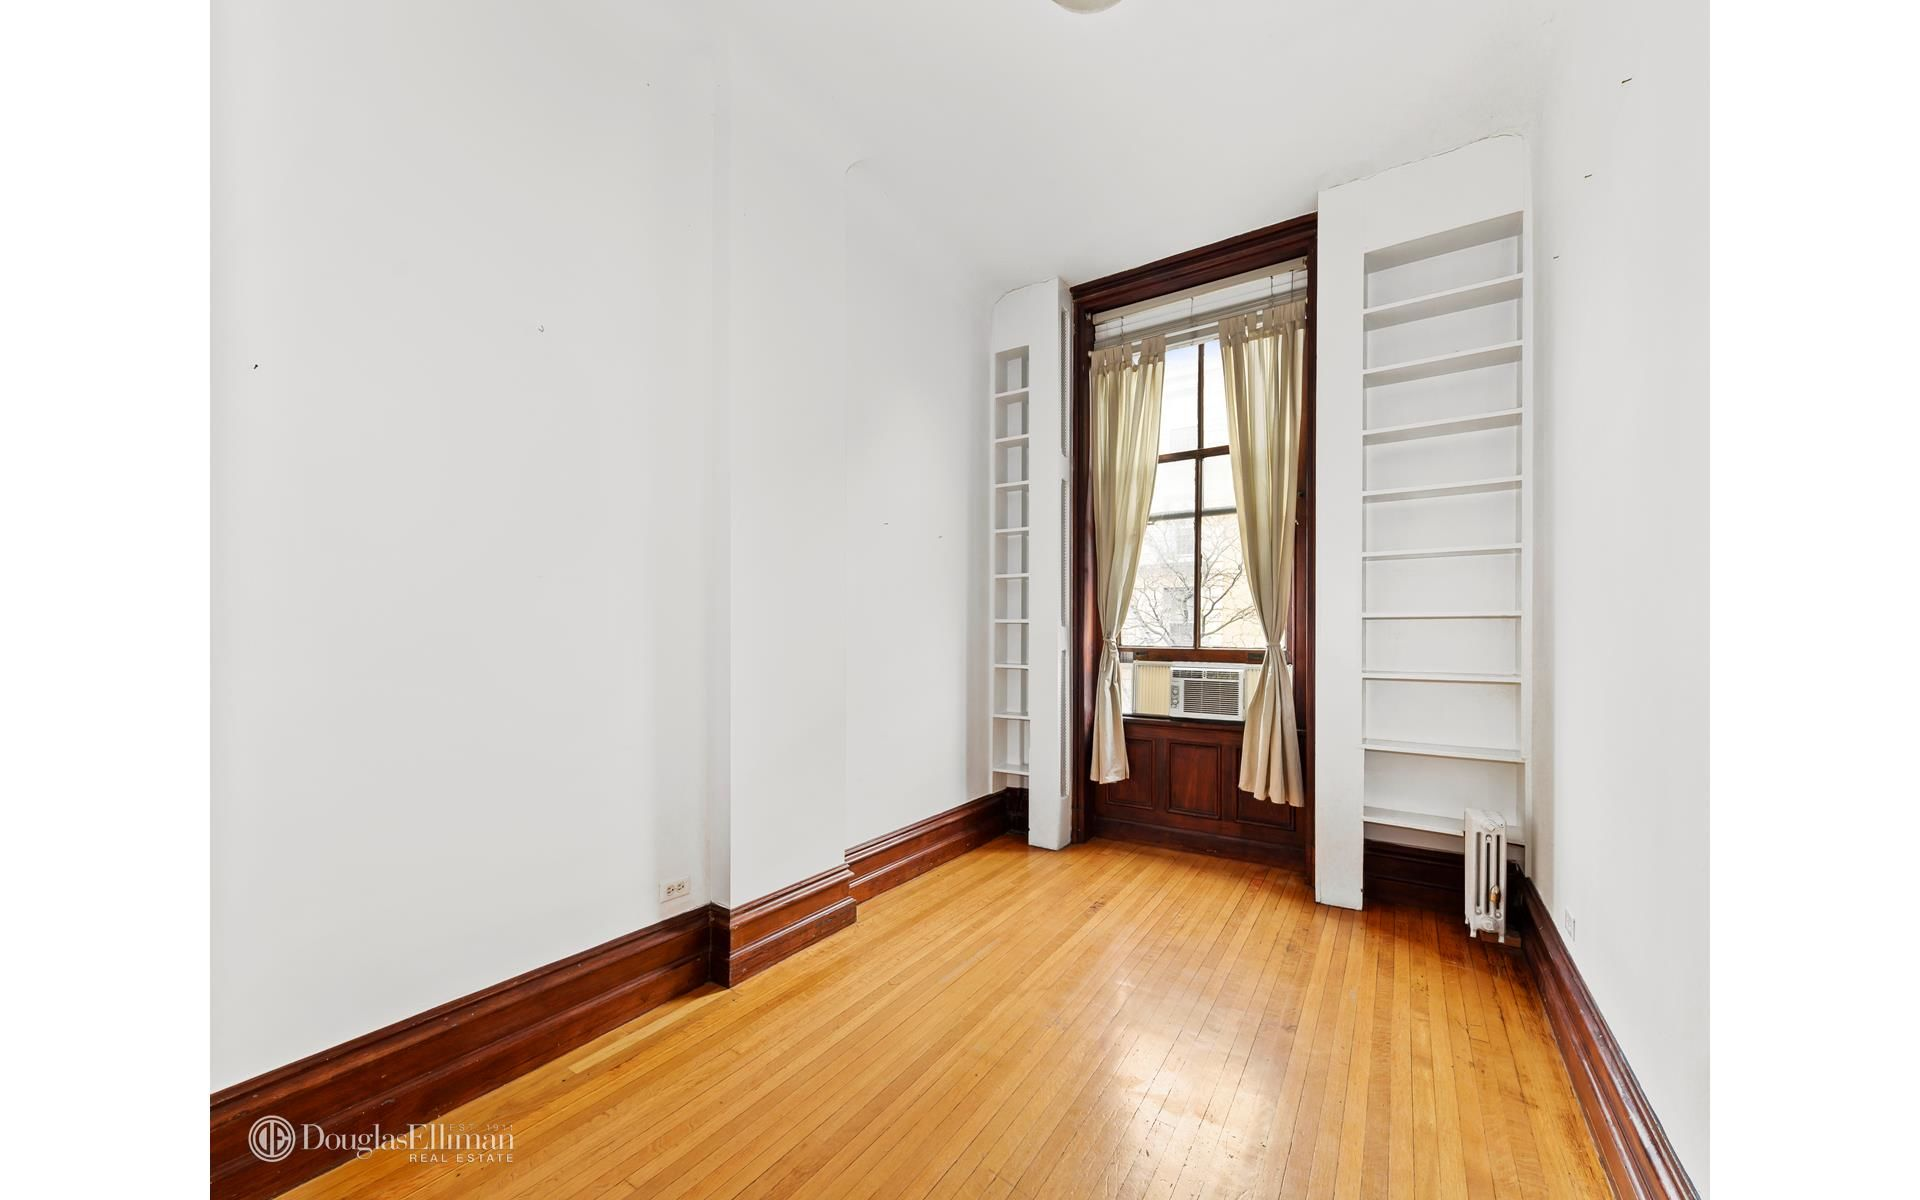 150 Columbia Hts, APT 4F Photo 2 - ELLIMAN-3729568